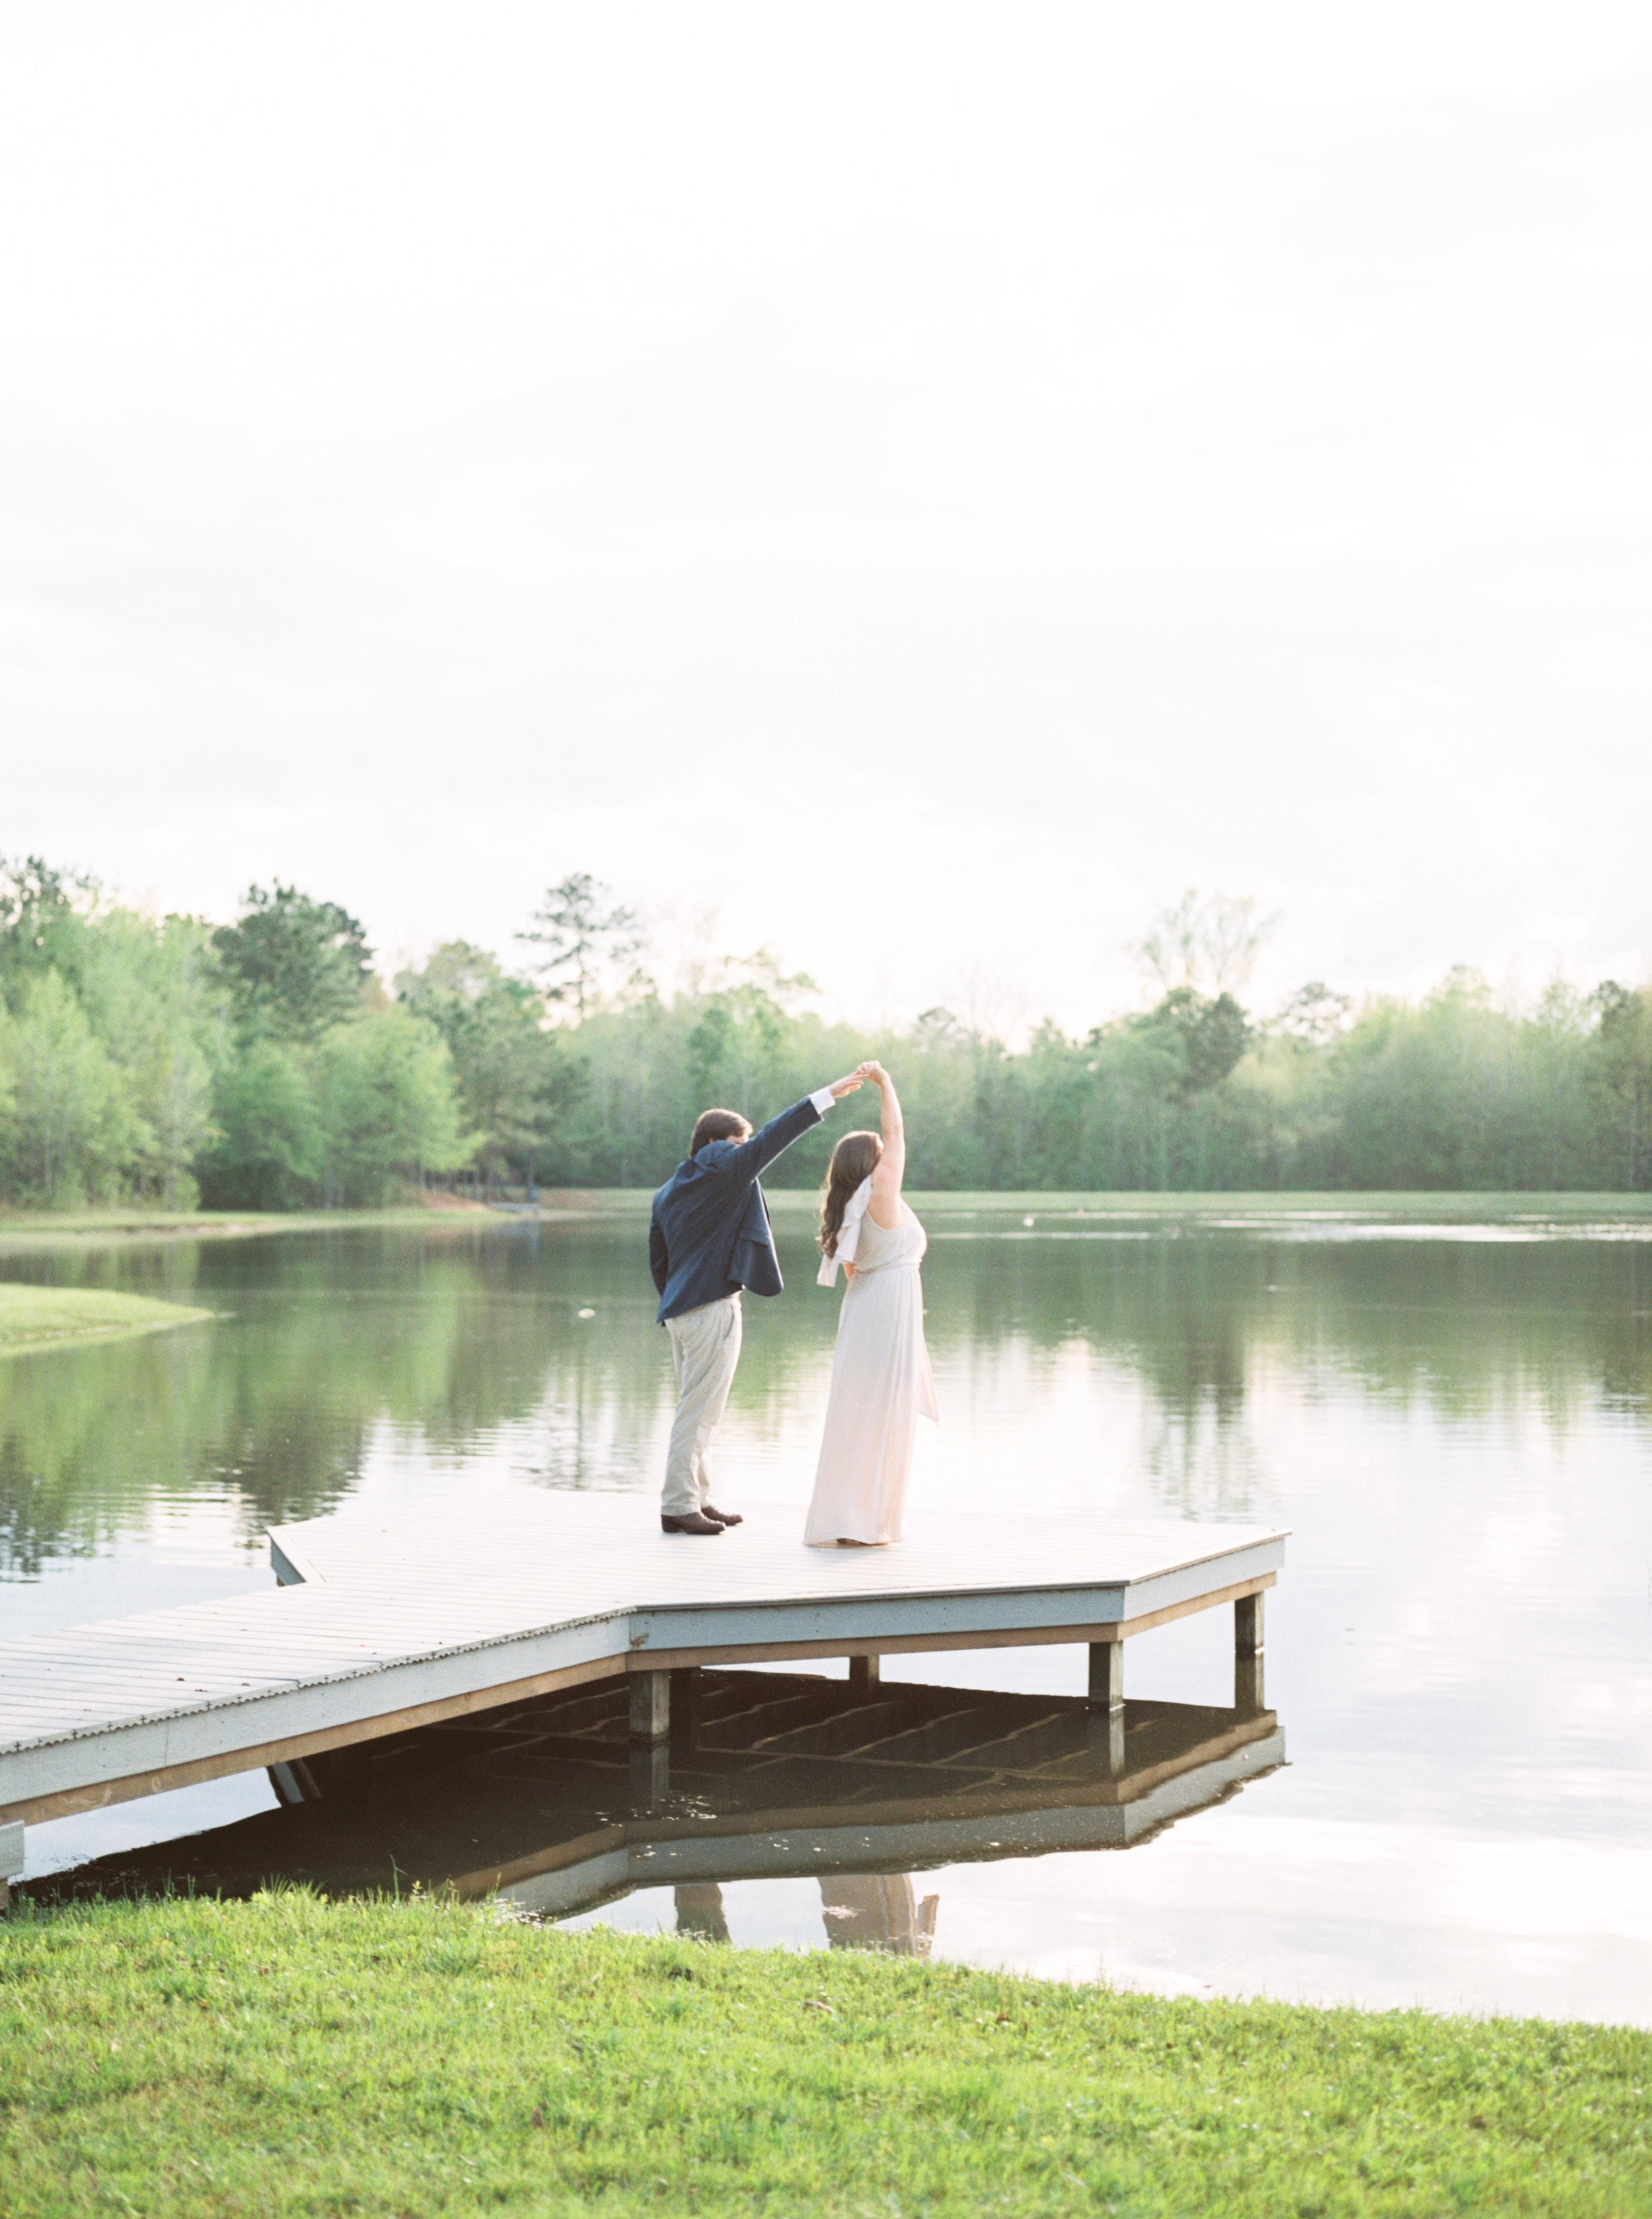 Landon_Grant_Carter_Film_Engagement_Session_Lake_Fallen_Photography_Columbus_Georgia-48.JPG